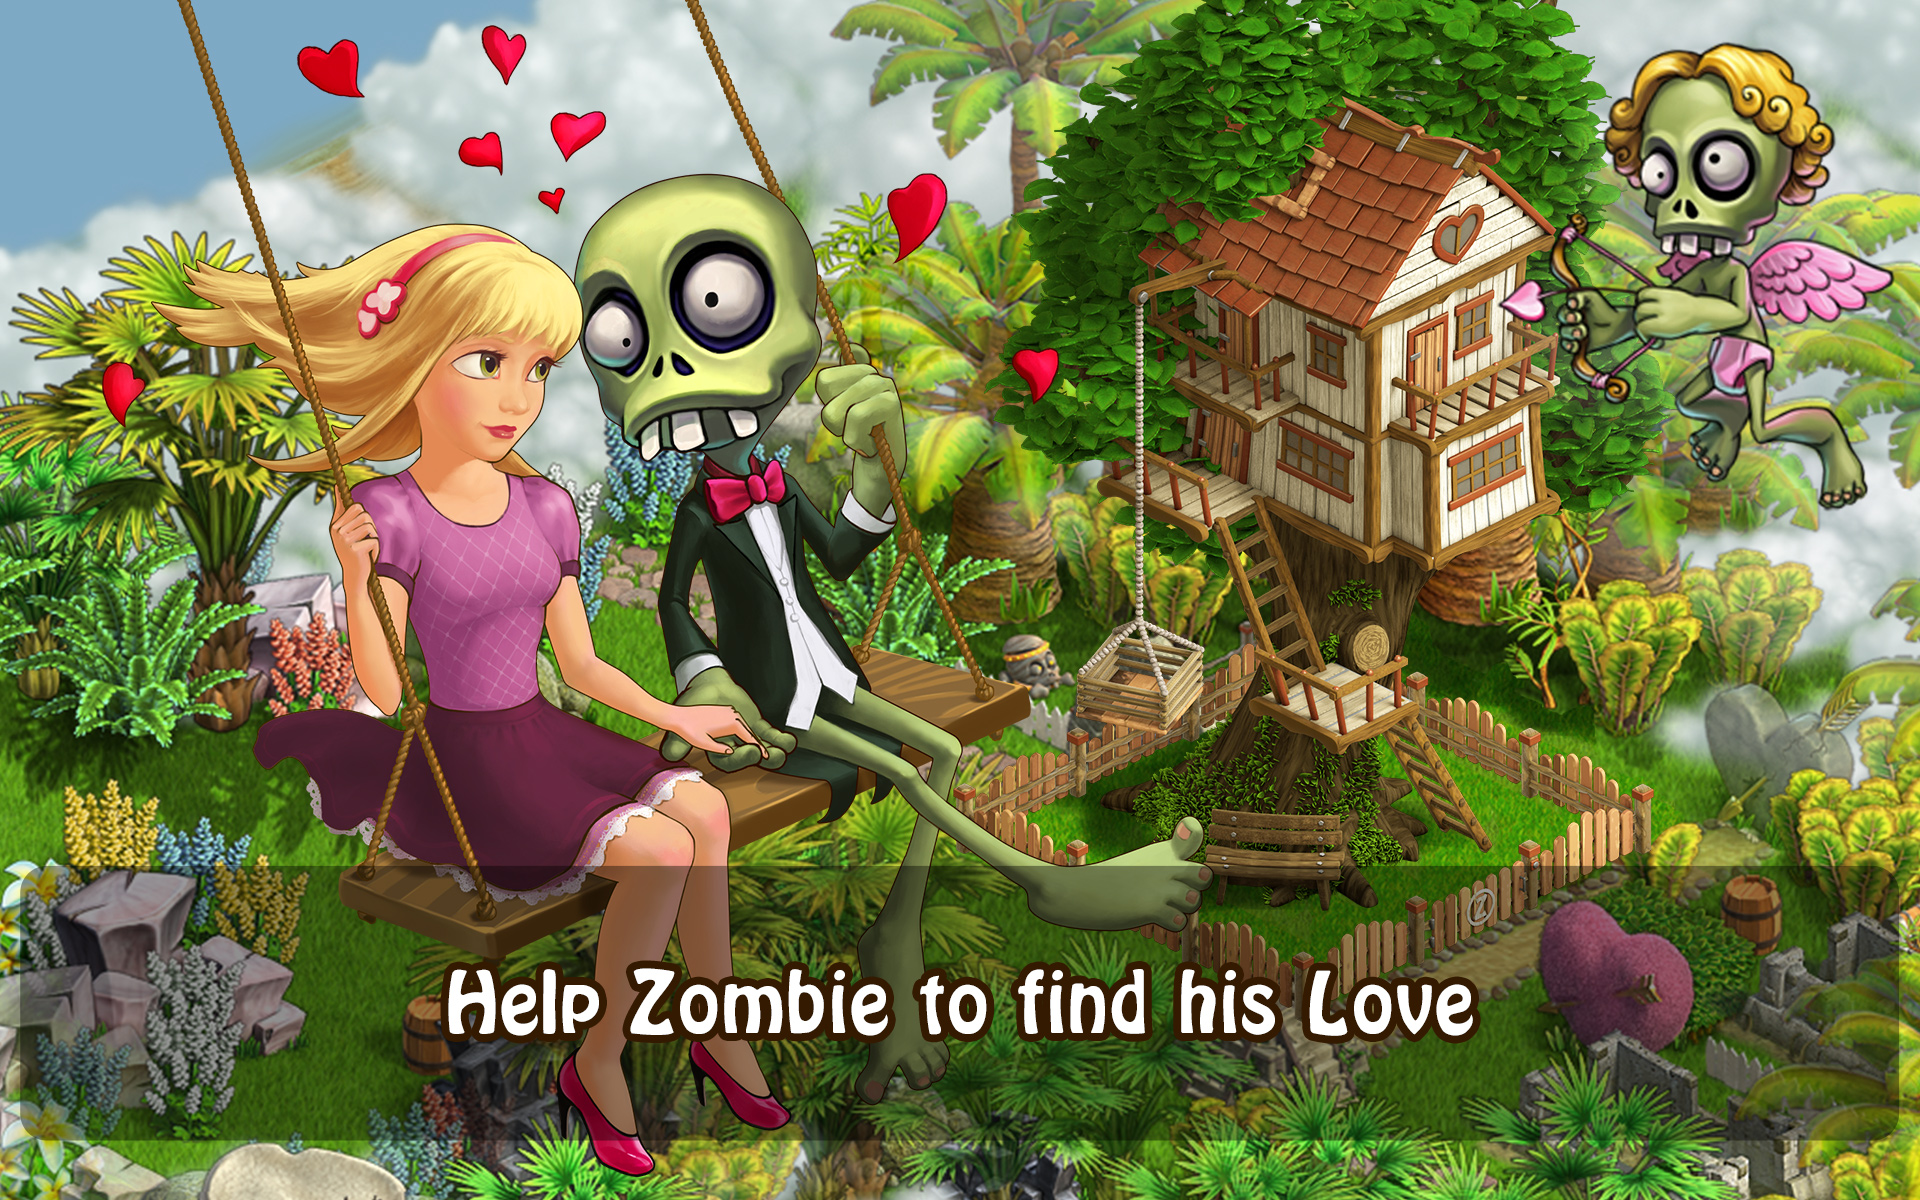 Zombie Castaways: Amazon.co.uk: Appstore for Android